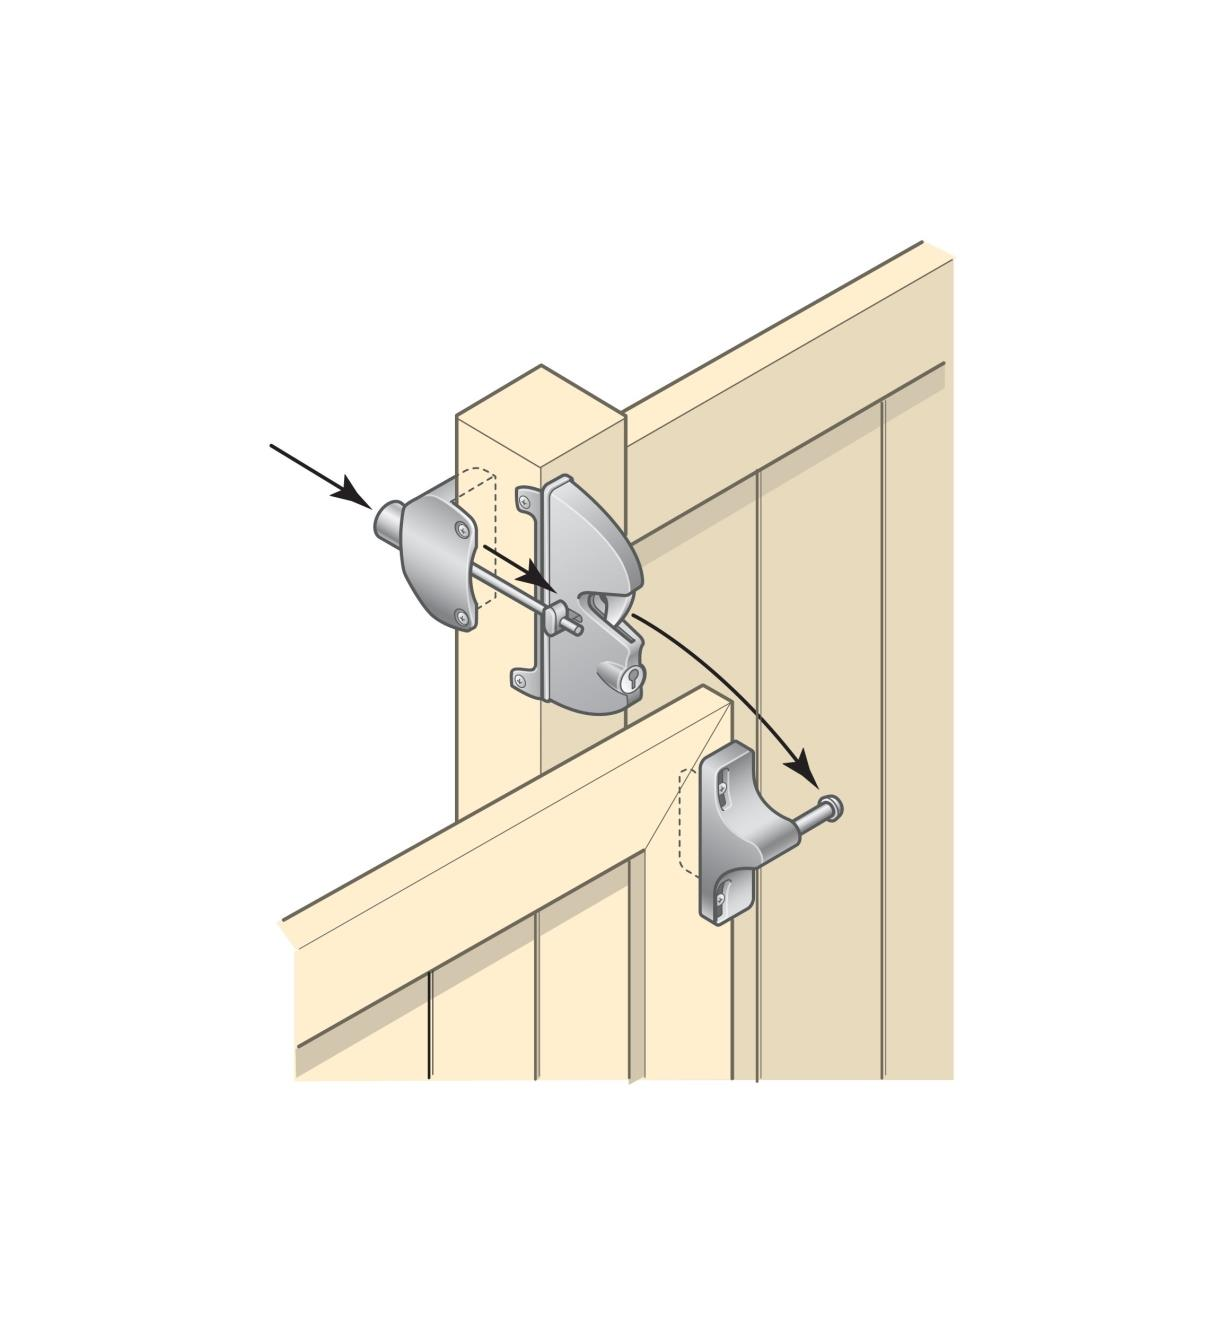 Illustration showing the Lockable Gate Latch mechanism